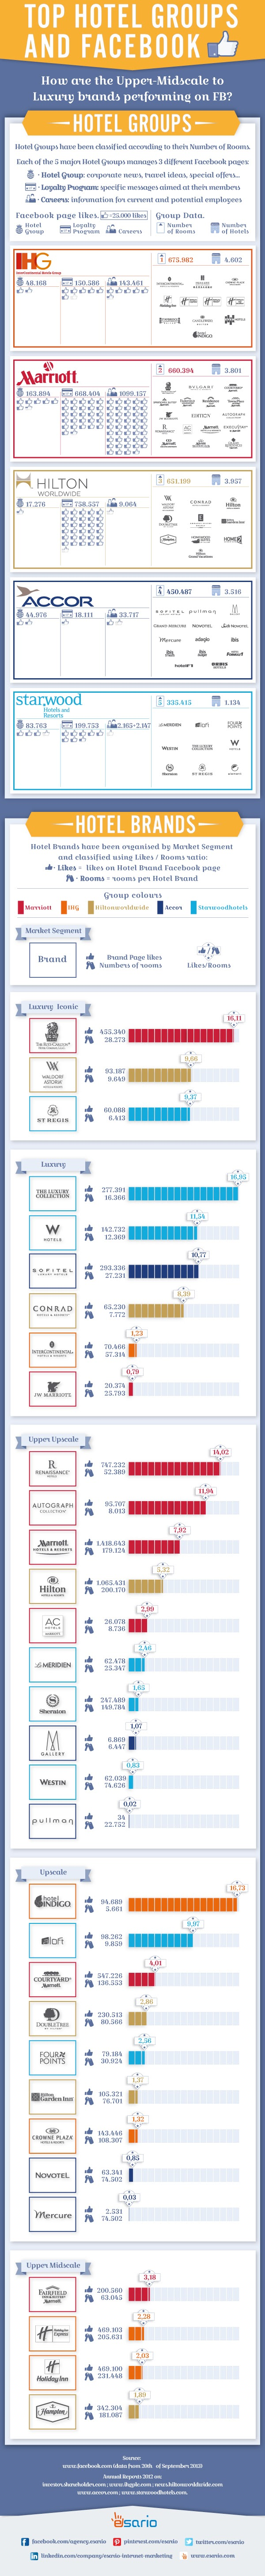 Top Hotel Groups And Facebook   #Infographic